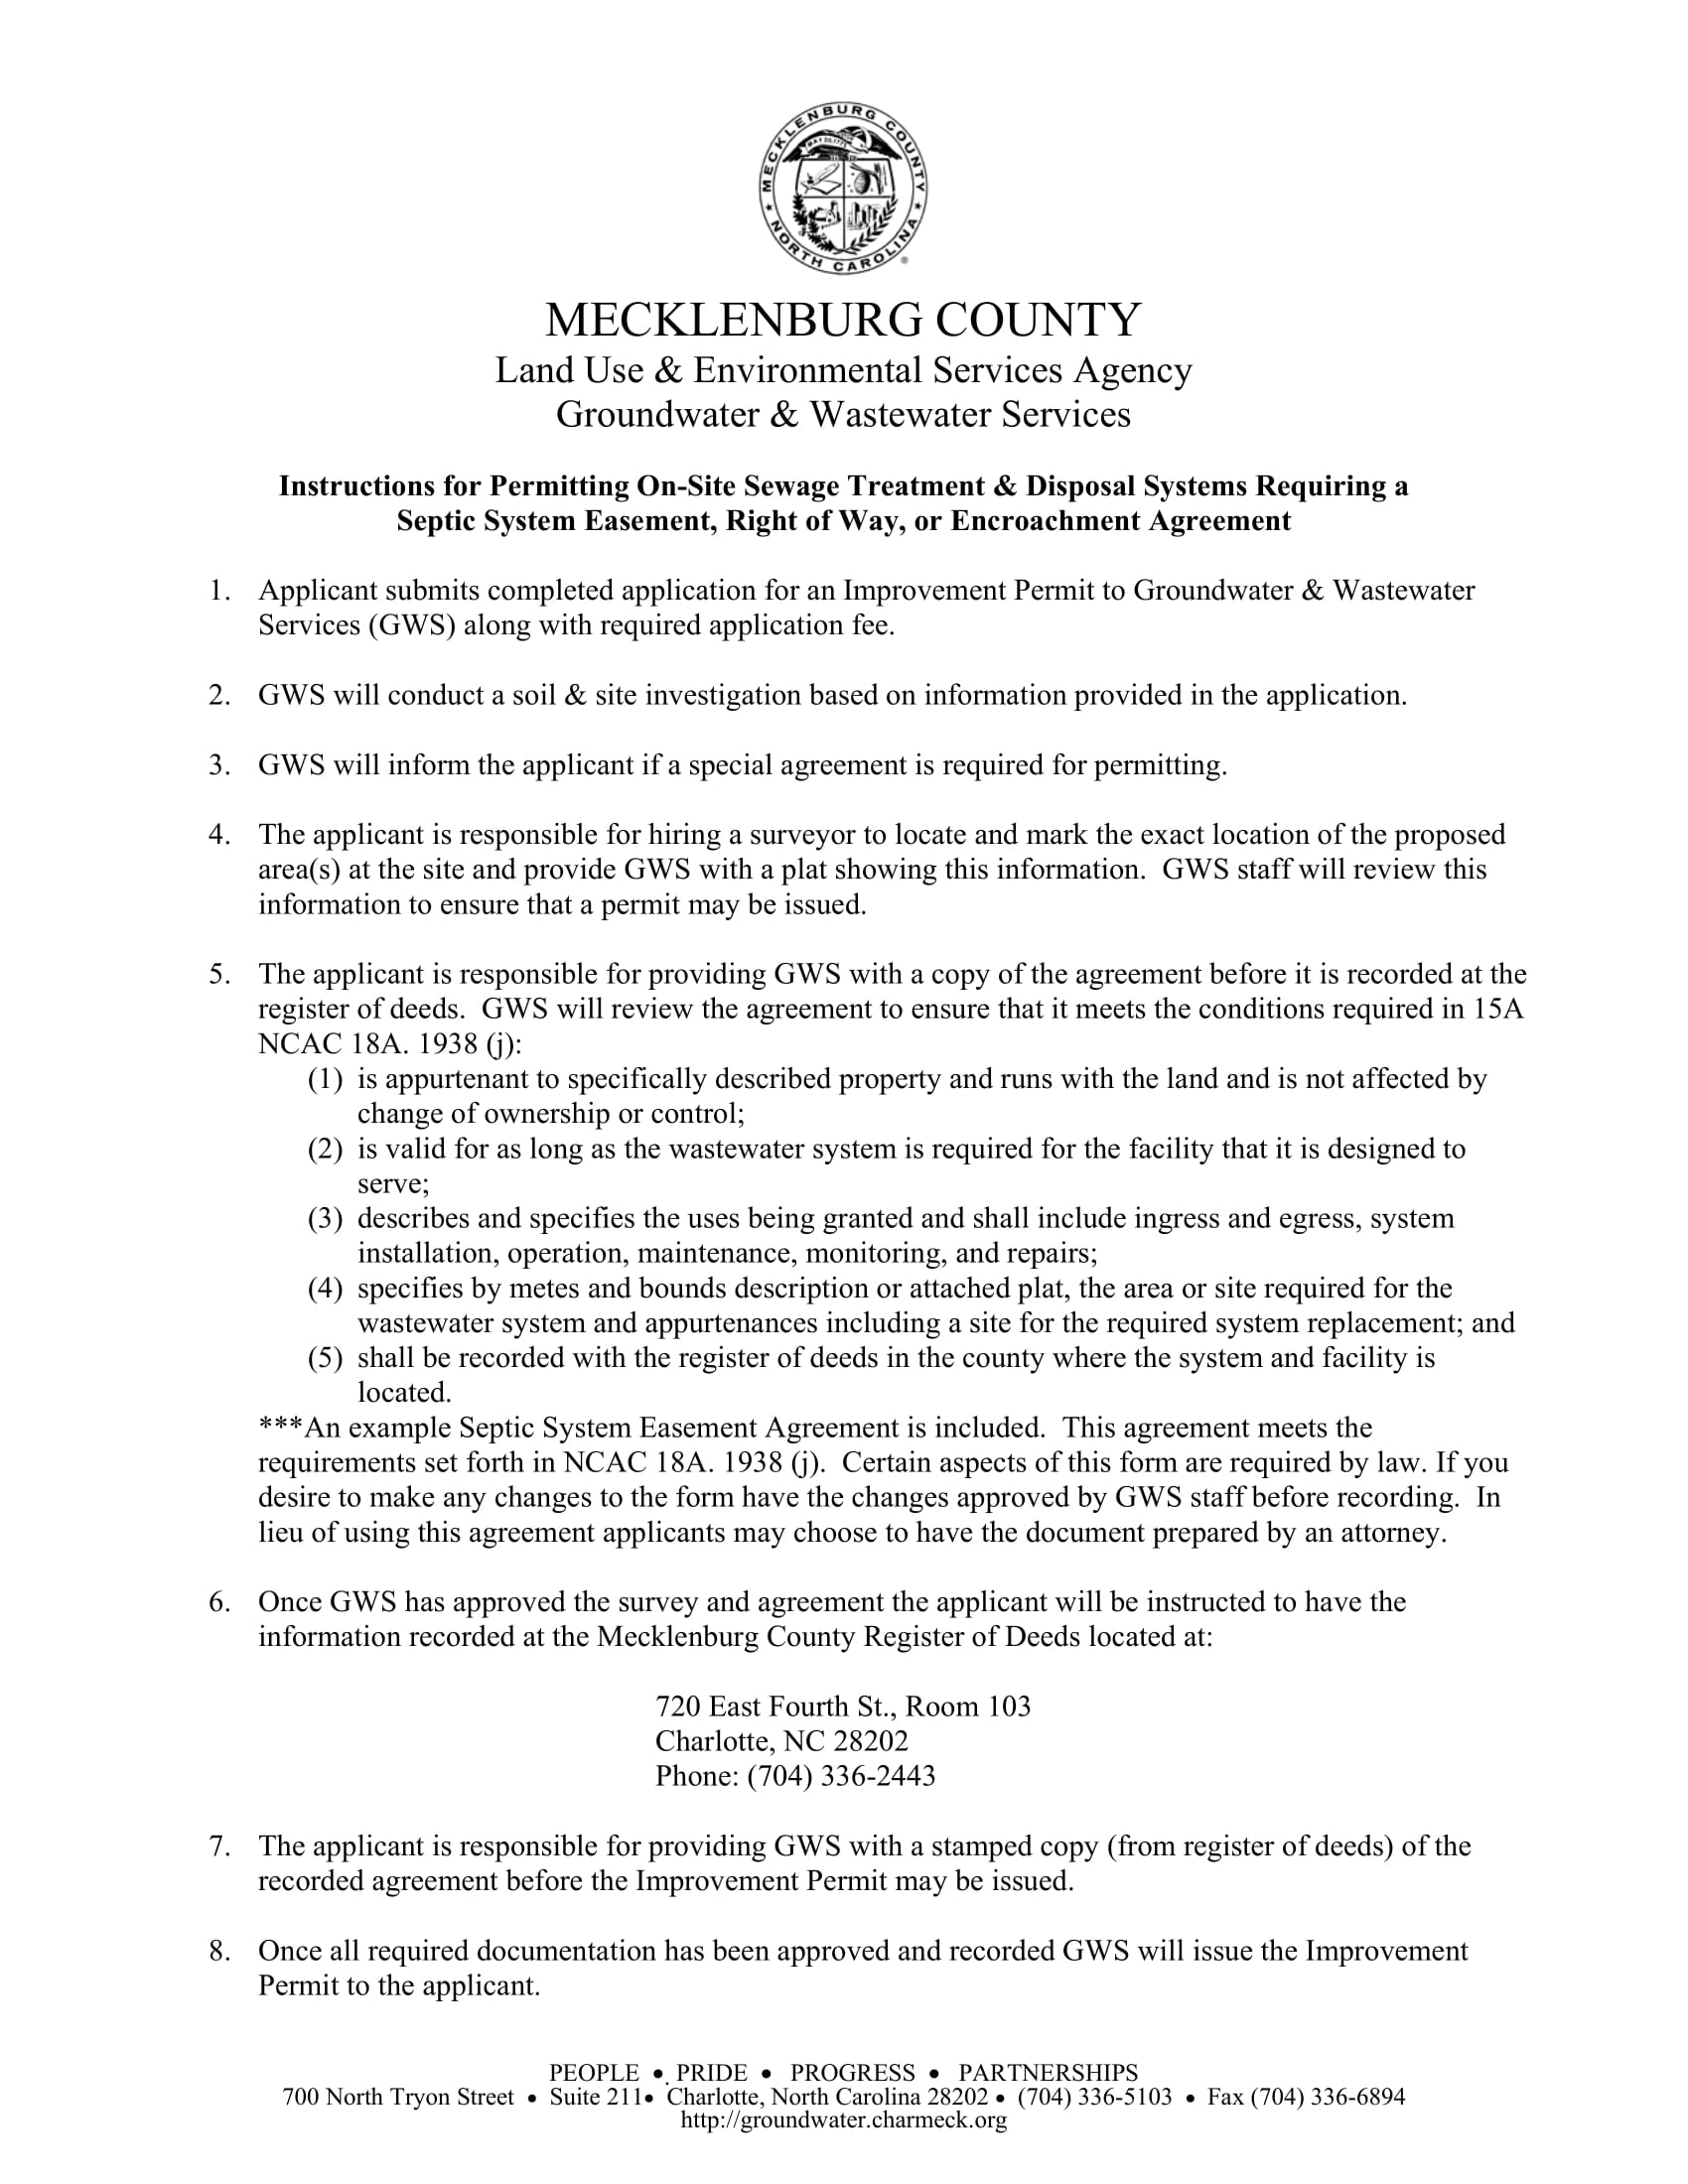 septic system easement agreement contract form 1